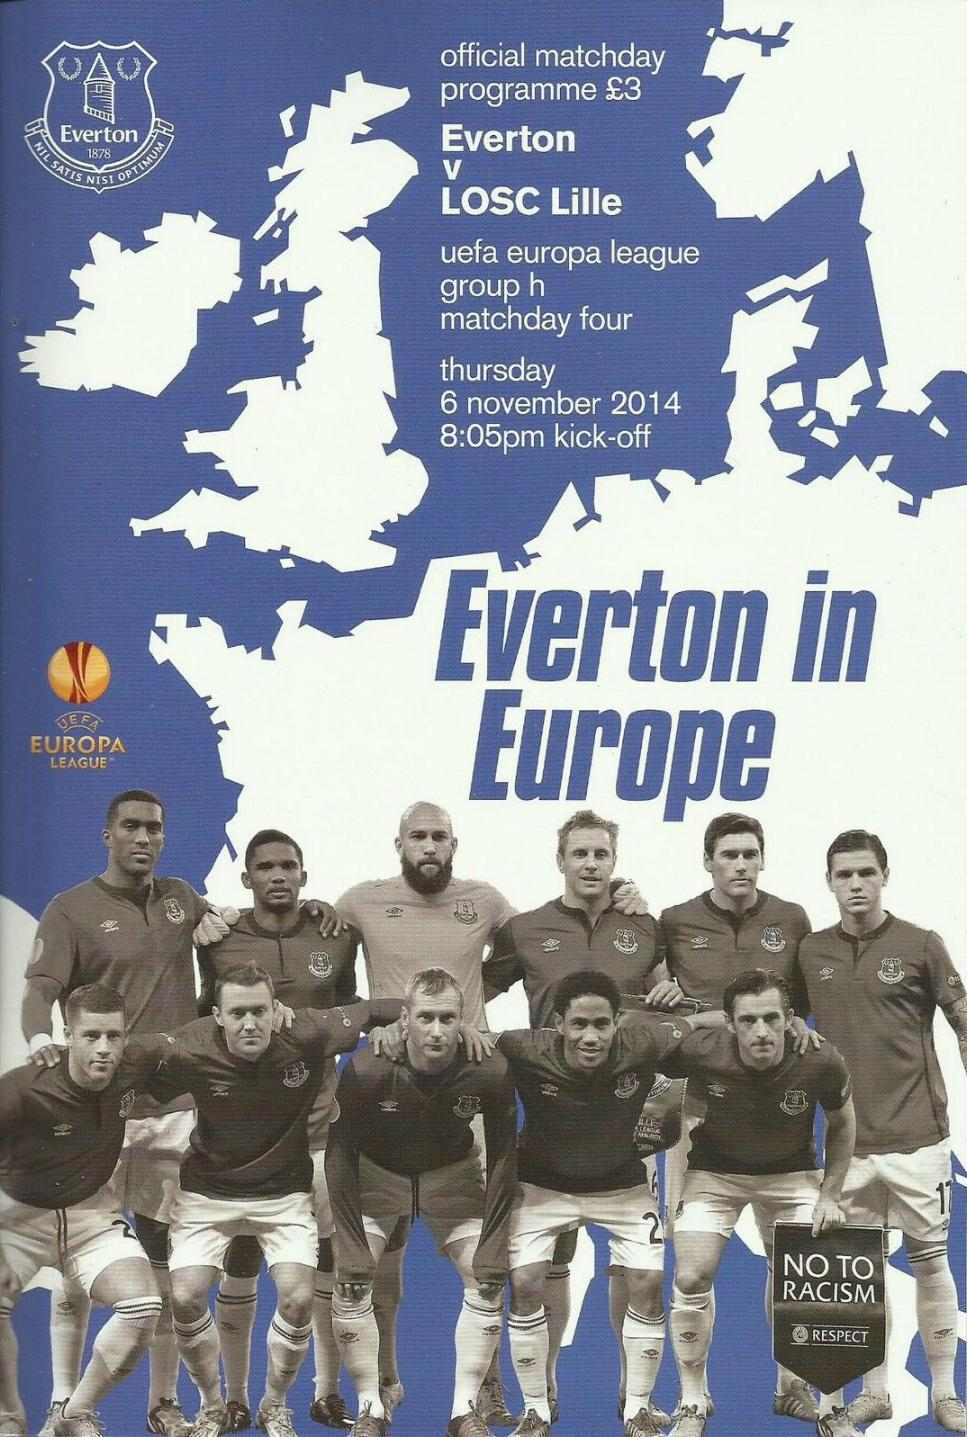 2014/15 EUROPA LEAGUE - EVERTON v LILLE